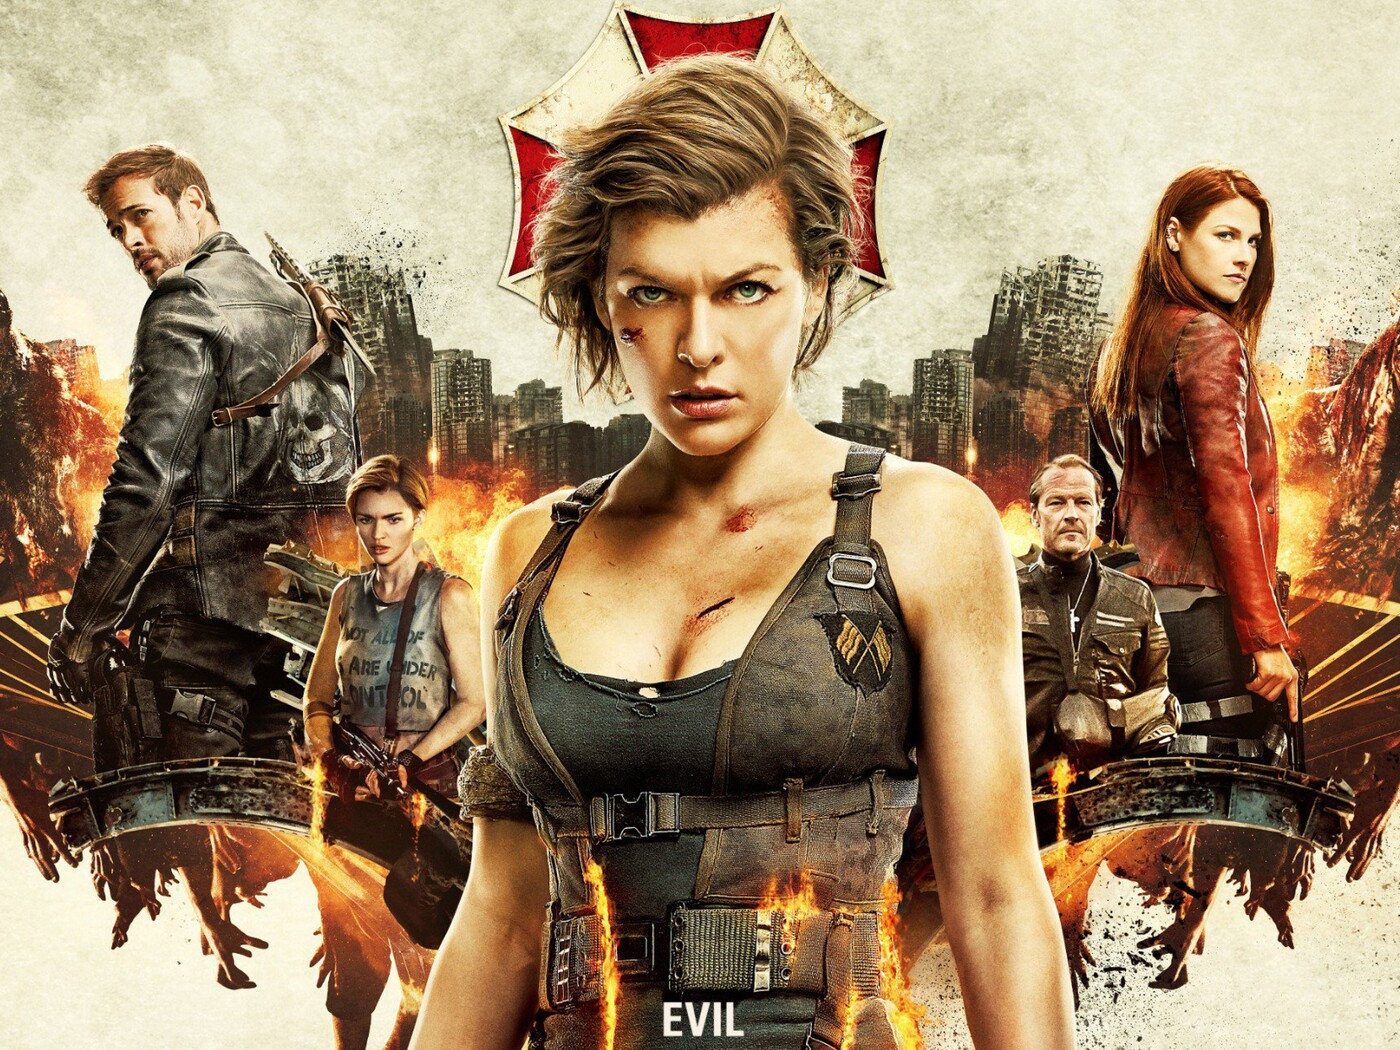 resident-evil-the-final-chapter-4k-2016-movie-4k.jpg